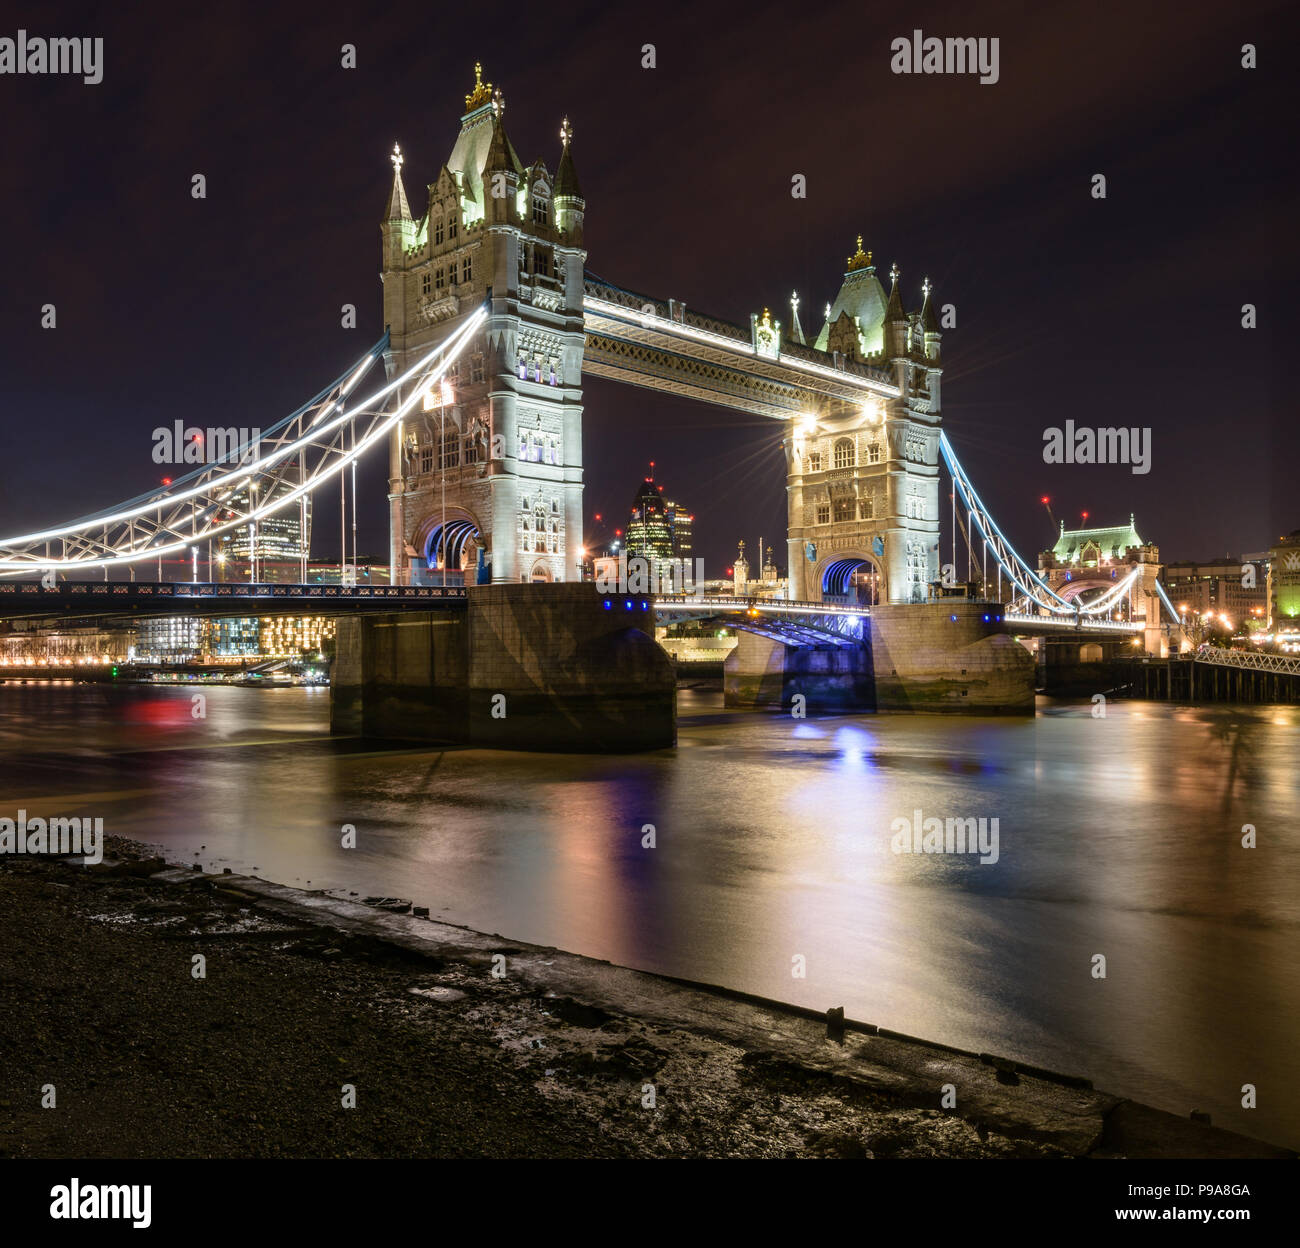 View of Tower Bridge lit up at night from the banks of the River Thames, London, with the Gherkin in the distance - Stock Image